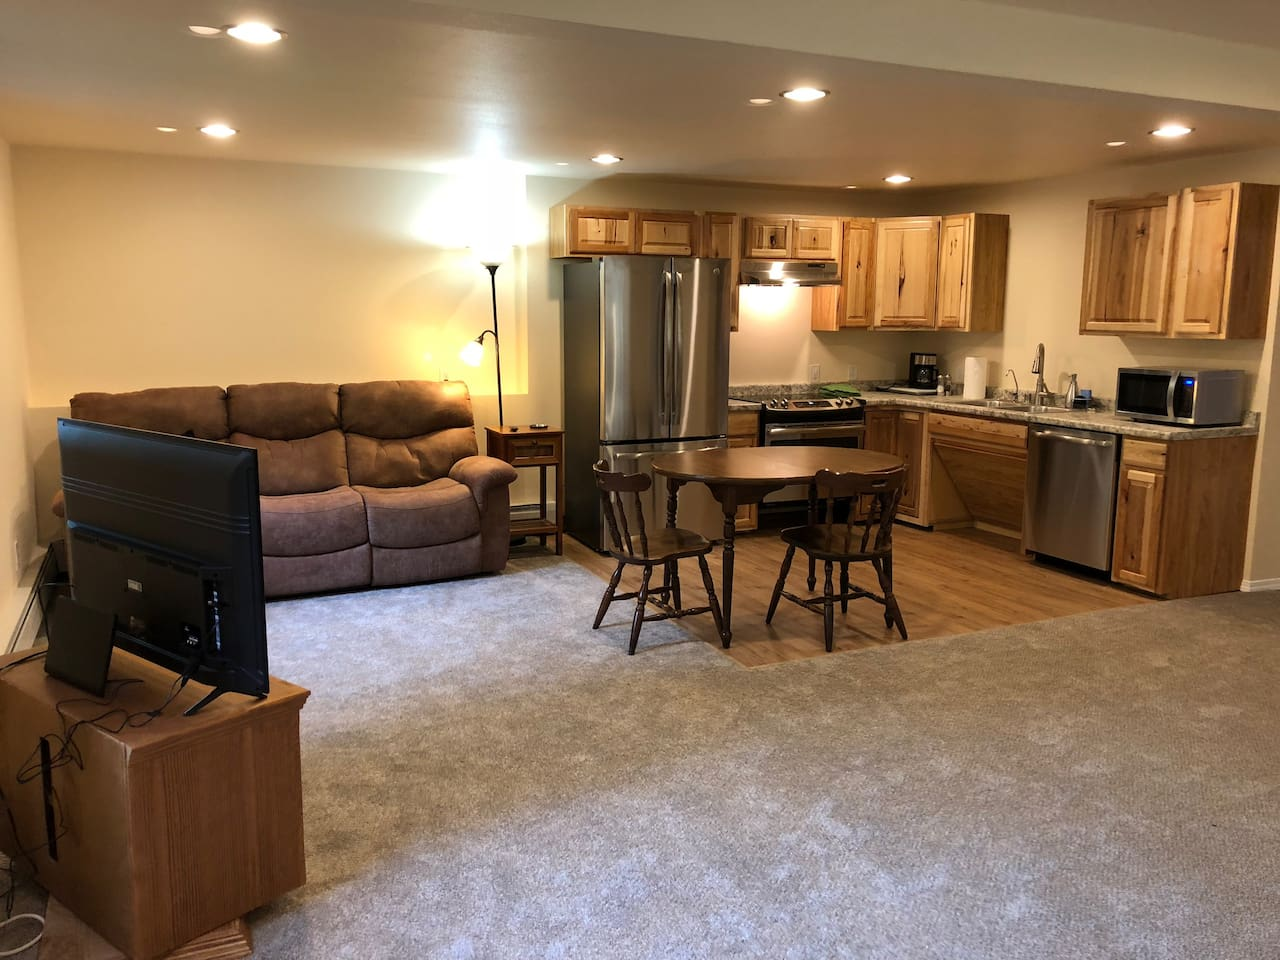 Wheel chair accessible studio with full kitchen